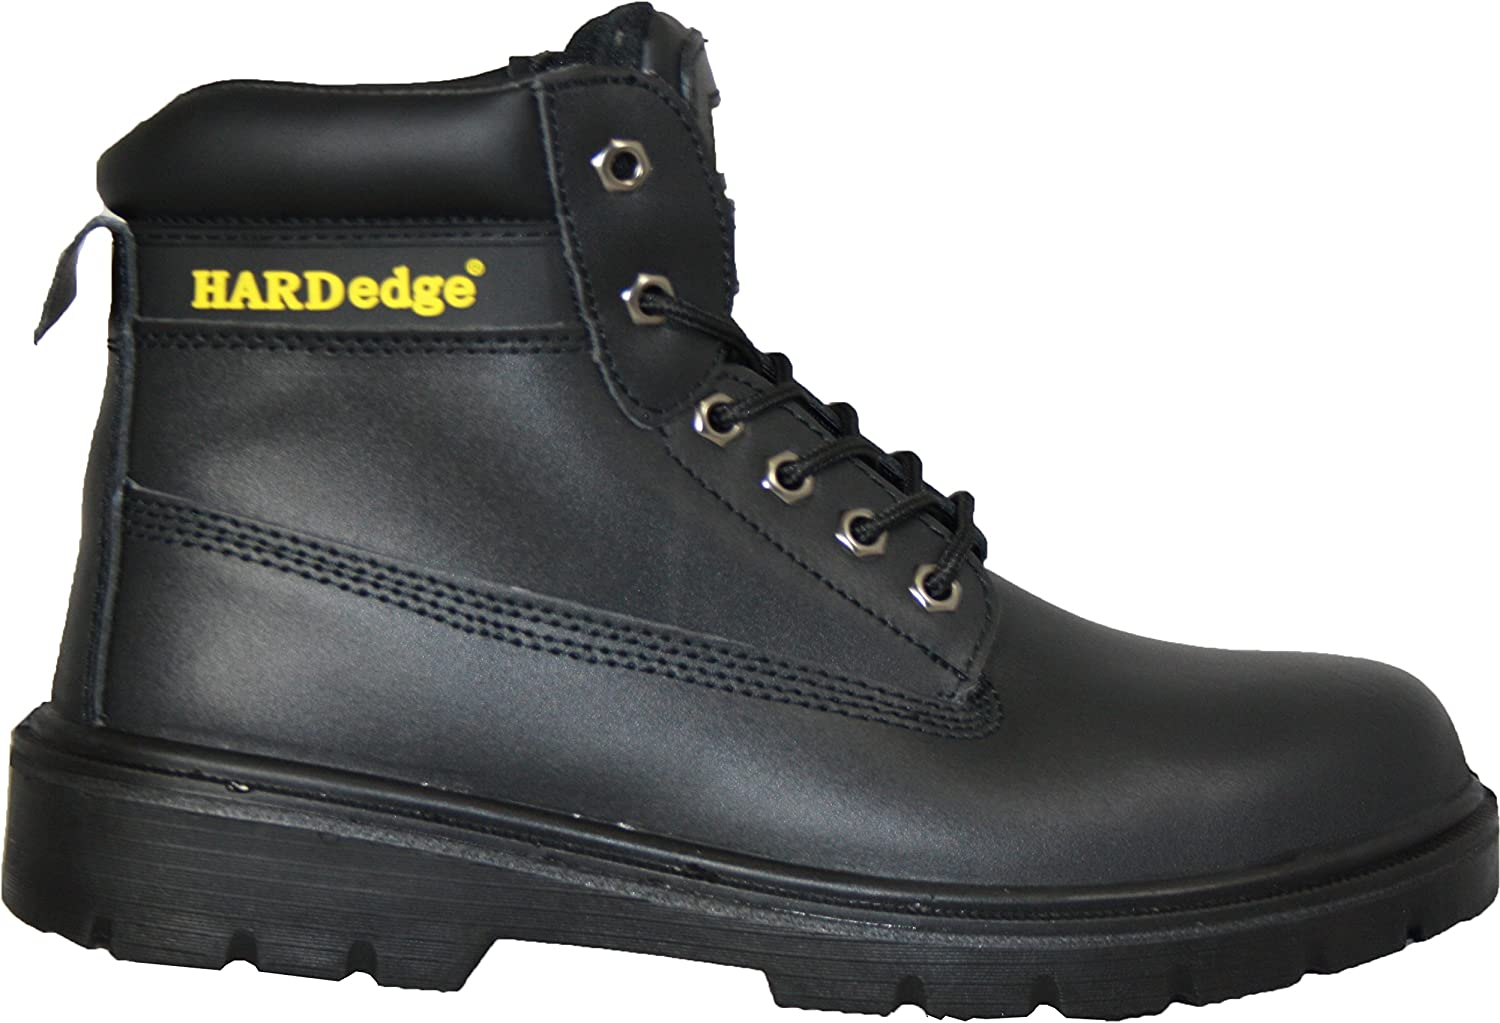 6  Eyelet Leather Safety Boots , Steel Toe Cap, Steel Mid Sole, S3 (08, Black)